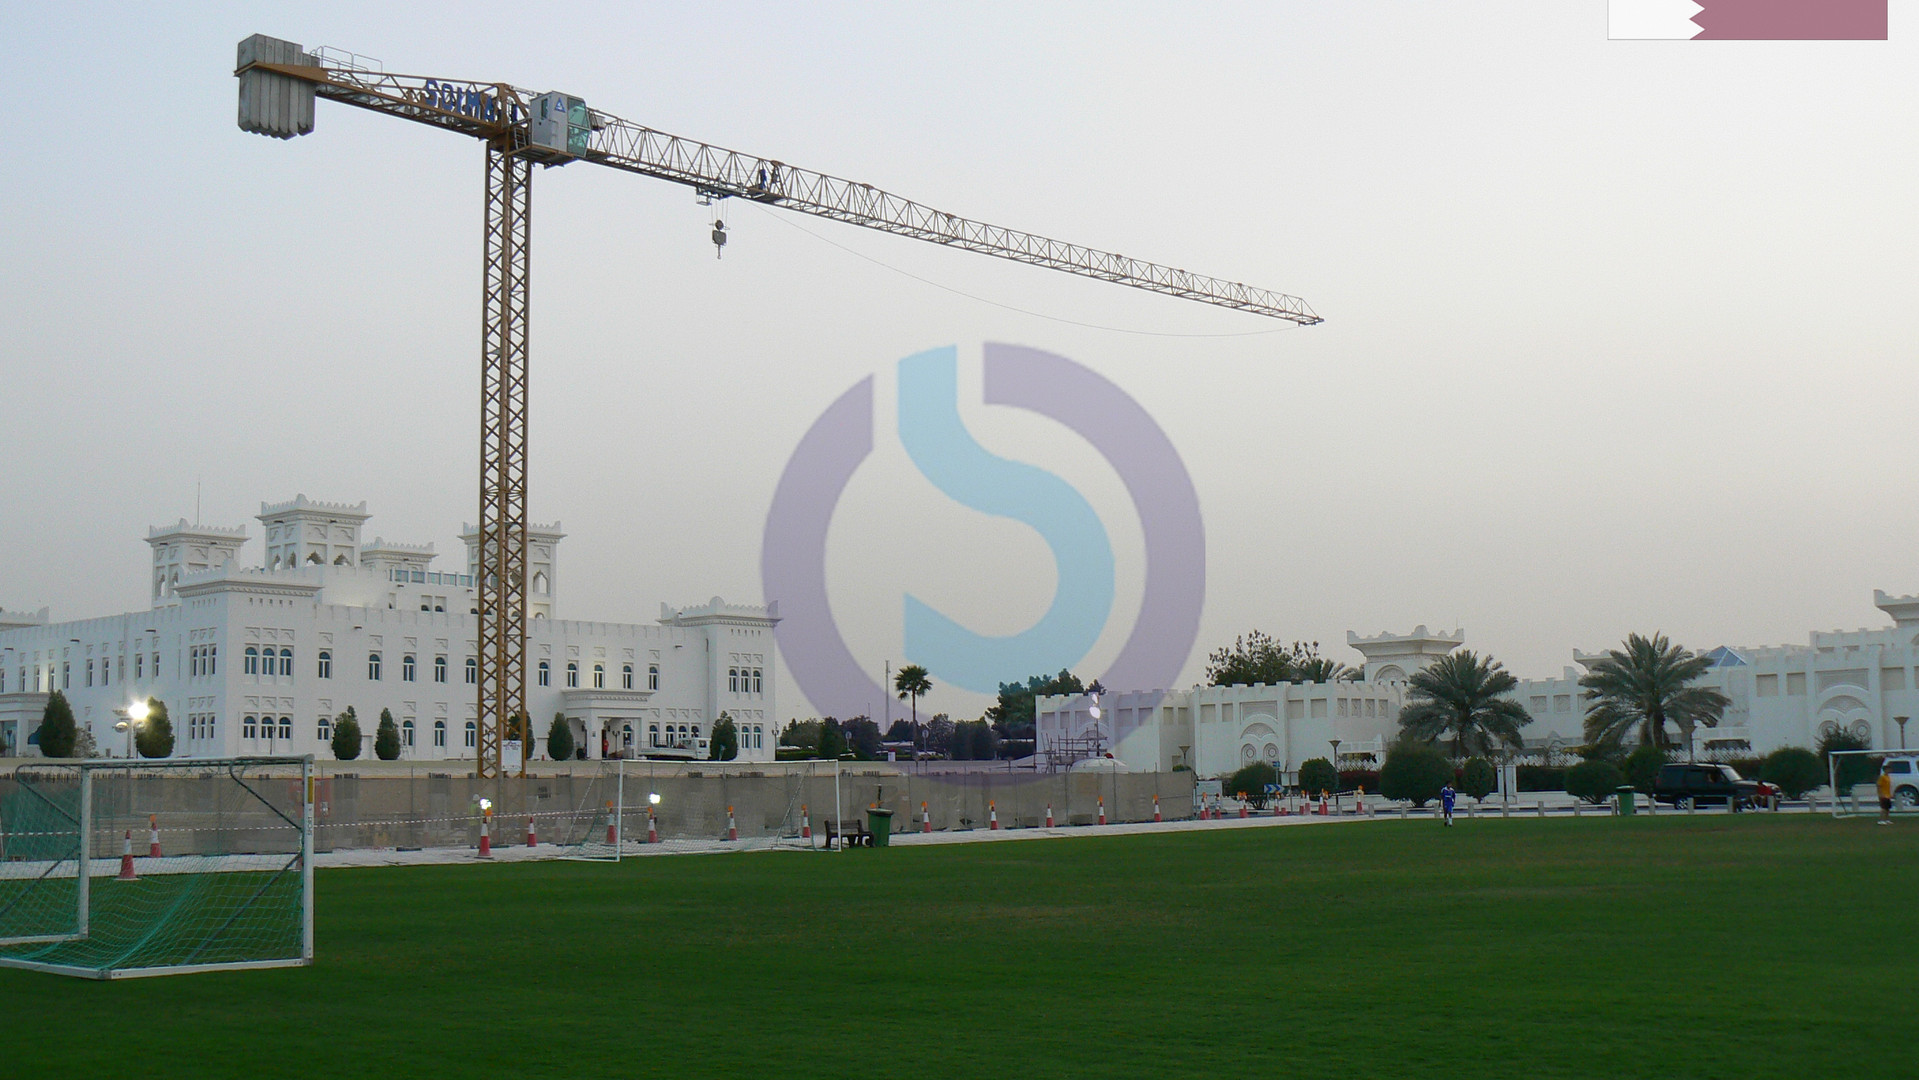 Tower crane in Qatar